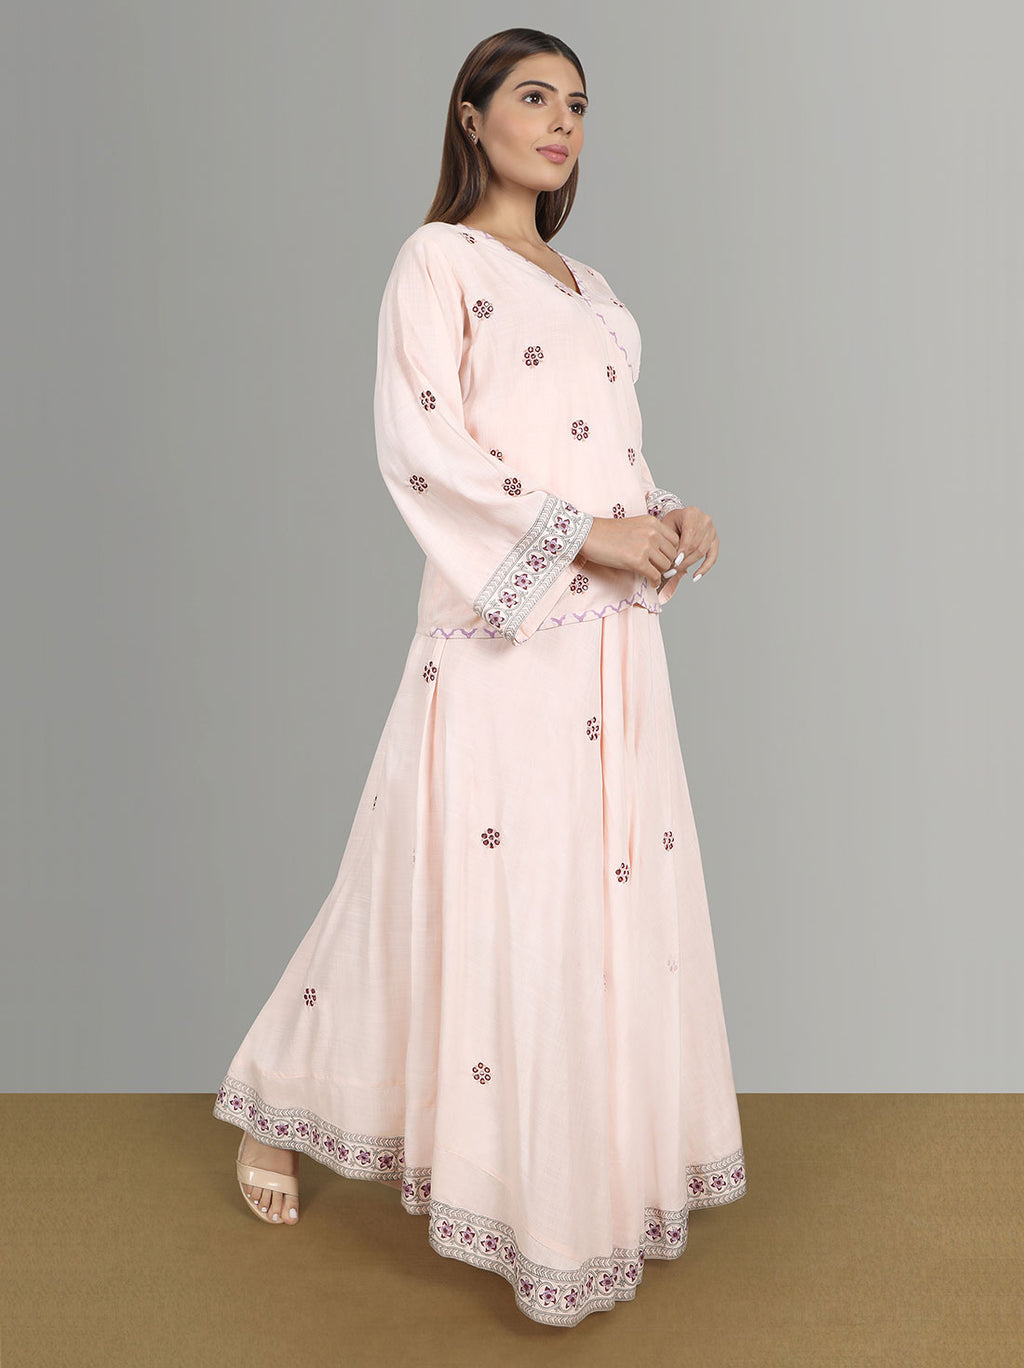 Wedding Kurtis - Ryon Hand Mirror Work Top And Skirt With Printed Border